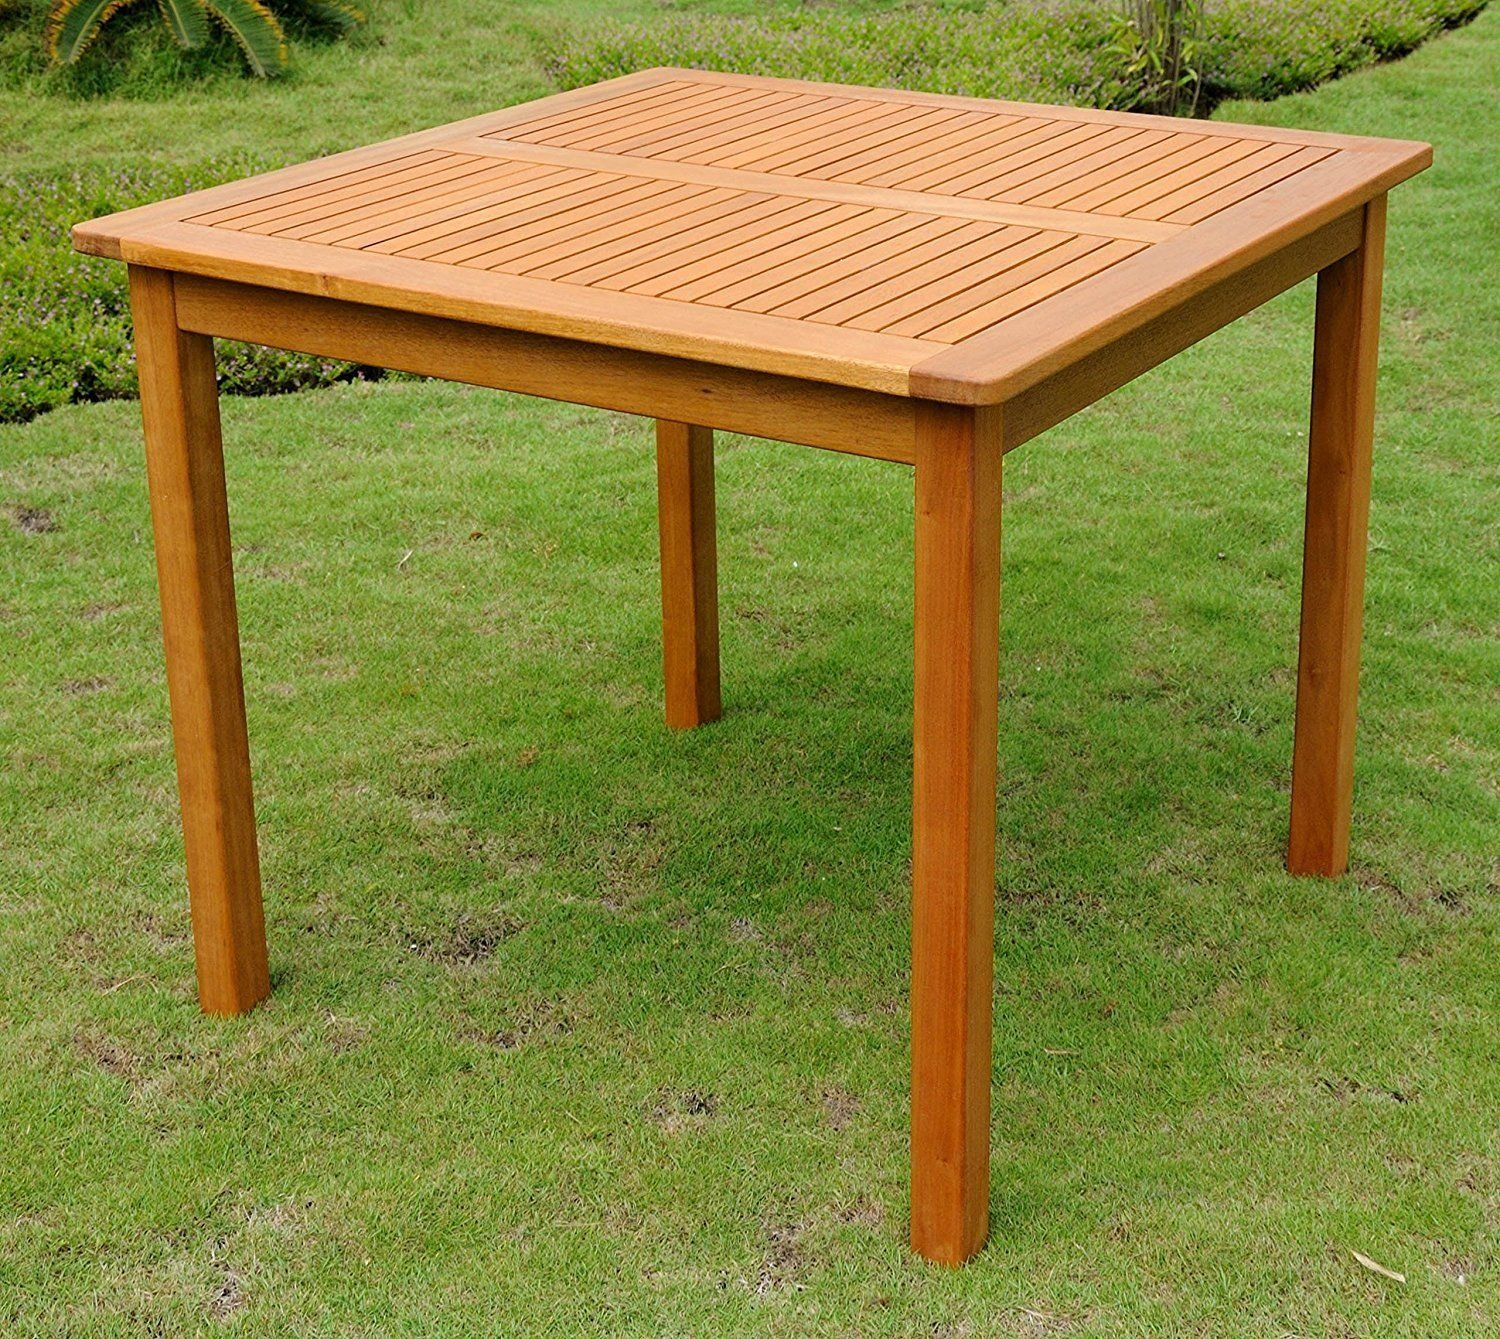 Square 32 Inch Outdoor Wood Patio Dining Table Wood Patio Patio Dining Table Patio Dining